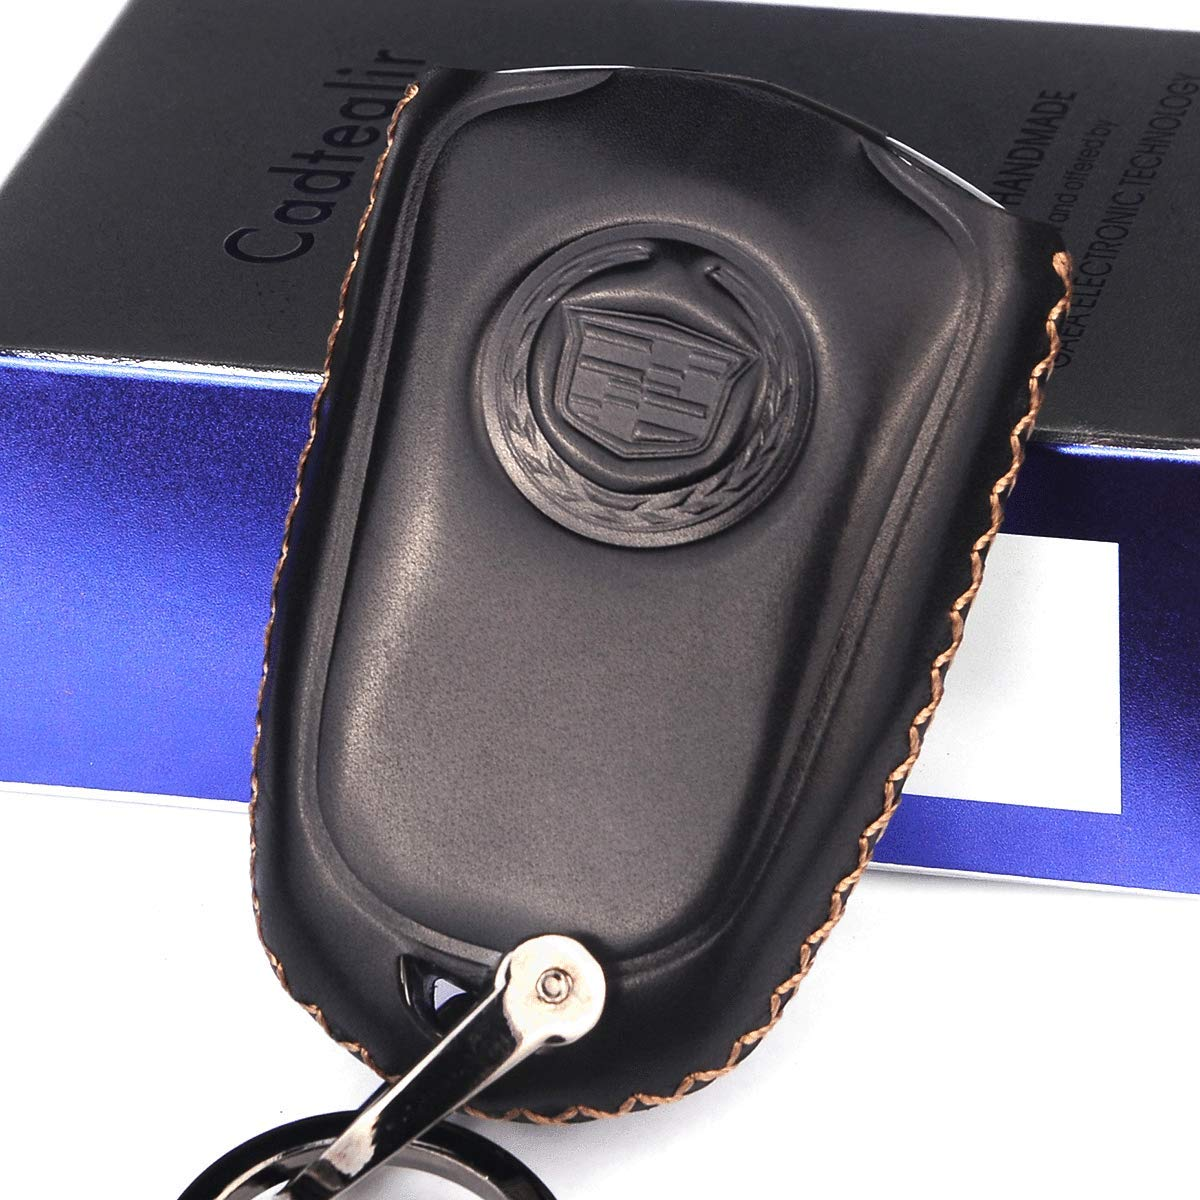 Cadtealir Calfskin Genuine Leather 2015-2018 Cadillac Escalade Remote Key fob Cover Leather Cadillac Escalade Key fob case Holder only for 6 Buttons Black Color